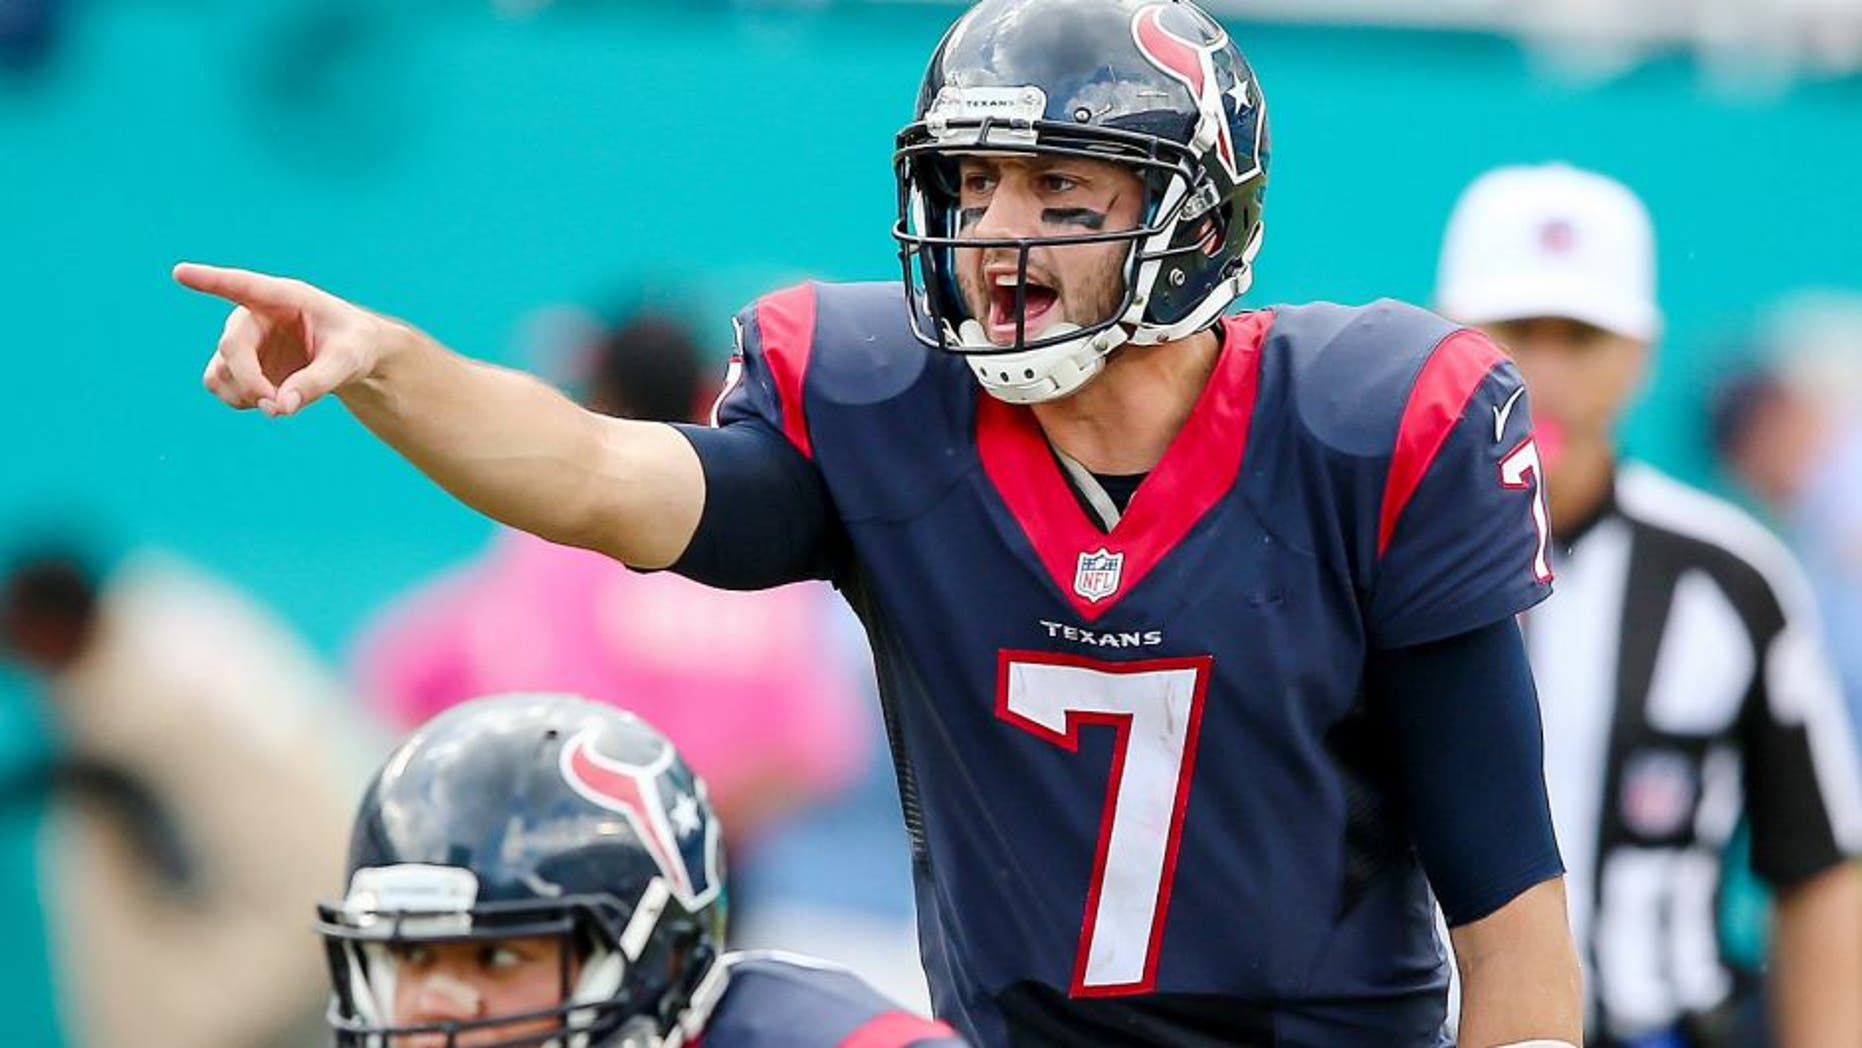 Oct 25, 2015; Miami Gardens, FL, USA; Houston Texans quarterback Brian Hoyer (7) yells out from the line of scrimmage against the Miami Dolphins during the second half at Sun Life Stadium. The Dolphins won 44-26. Mandatory Credit: Steve Mitchell-USA TODAY Sports